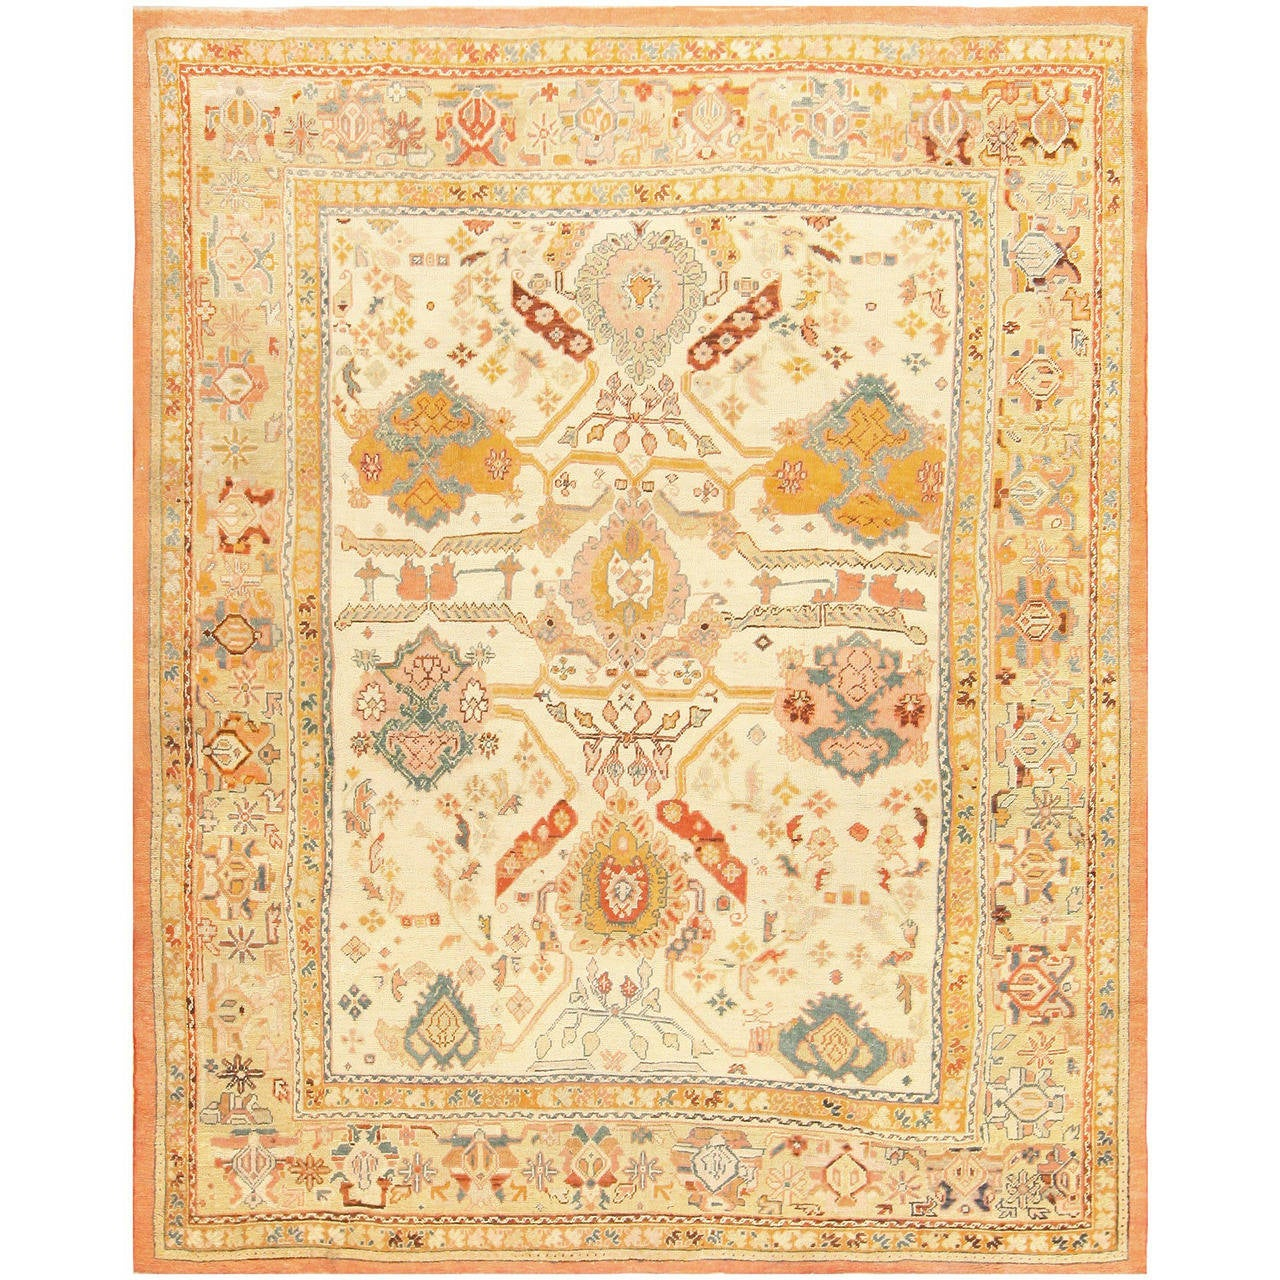 photos buying buy rugs architectural carpets antique to gallery how or rug expert an for vintage turkish tips digest